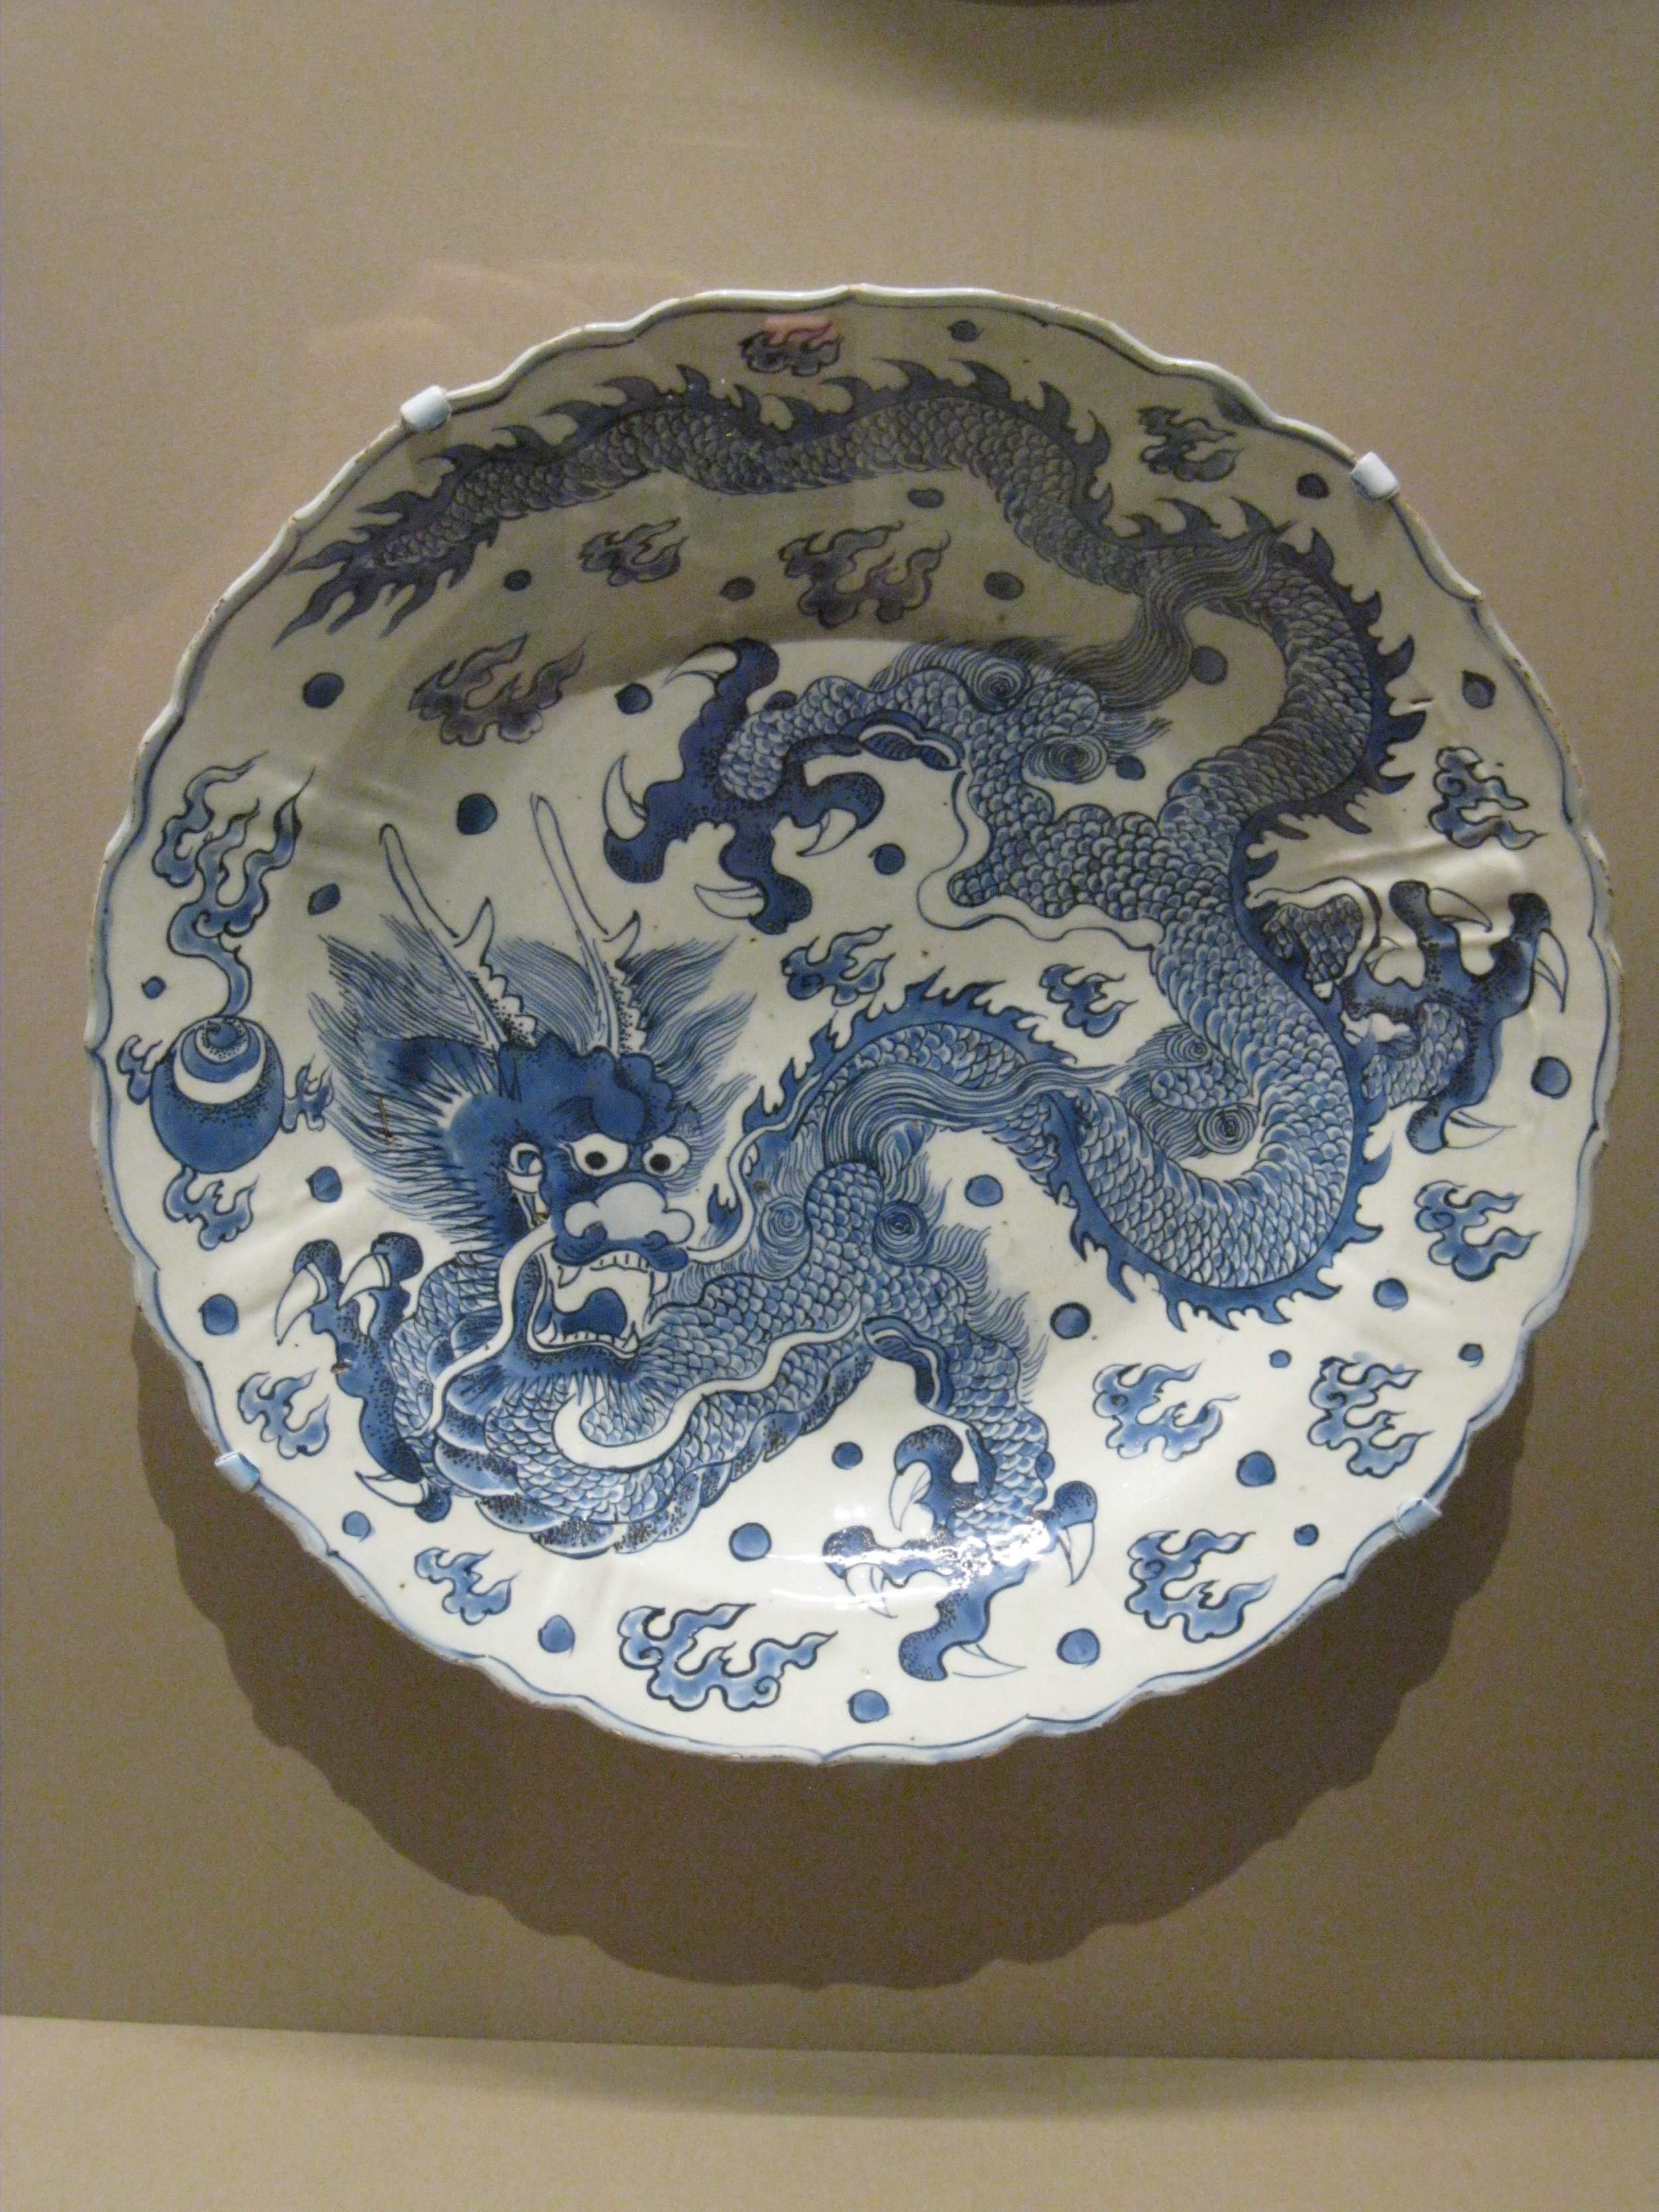 Dish with Dragon, made in China early 1600's